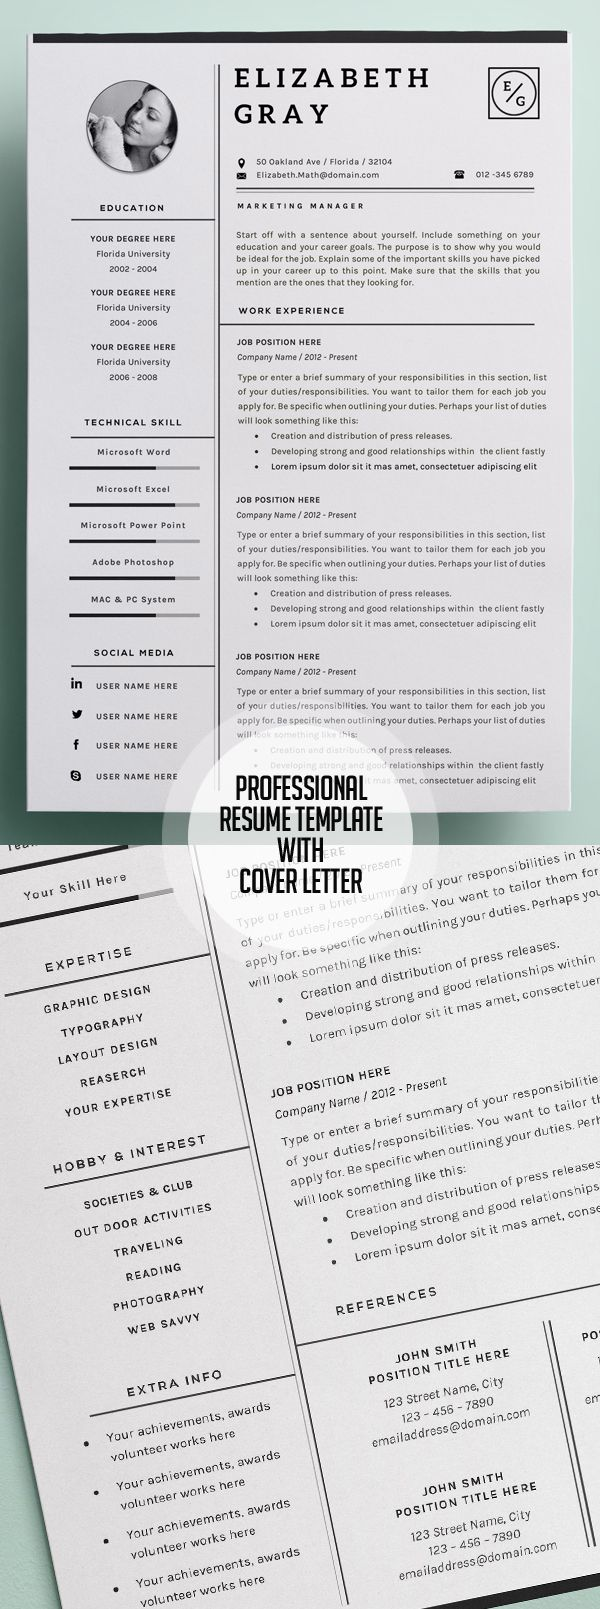 Opposenewapstandardsus  Sweet  Resume Ideas On Pinterest  Resume Resume Templates And  With Licious Professional And Modern Resume Template With Page Cover Cvtemplate With Adorable Free Resumes Also Skills To List On Resume In Addition How To Make Resume And Marketing Resume As Well As Resume Fonts Additionally Resume Cover Letter Template From Pinterestcom With Opposenewapstandardsus  Licious  Resume Ideas On Pinterest  Resume Resume Templates And  With Adorable Professional And Modern Resume Template With Page Cover Cvtemplate And Sweet Free Resumes Also Skills To List On Resume In Addition How To Make Resume From Pinterestcom